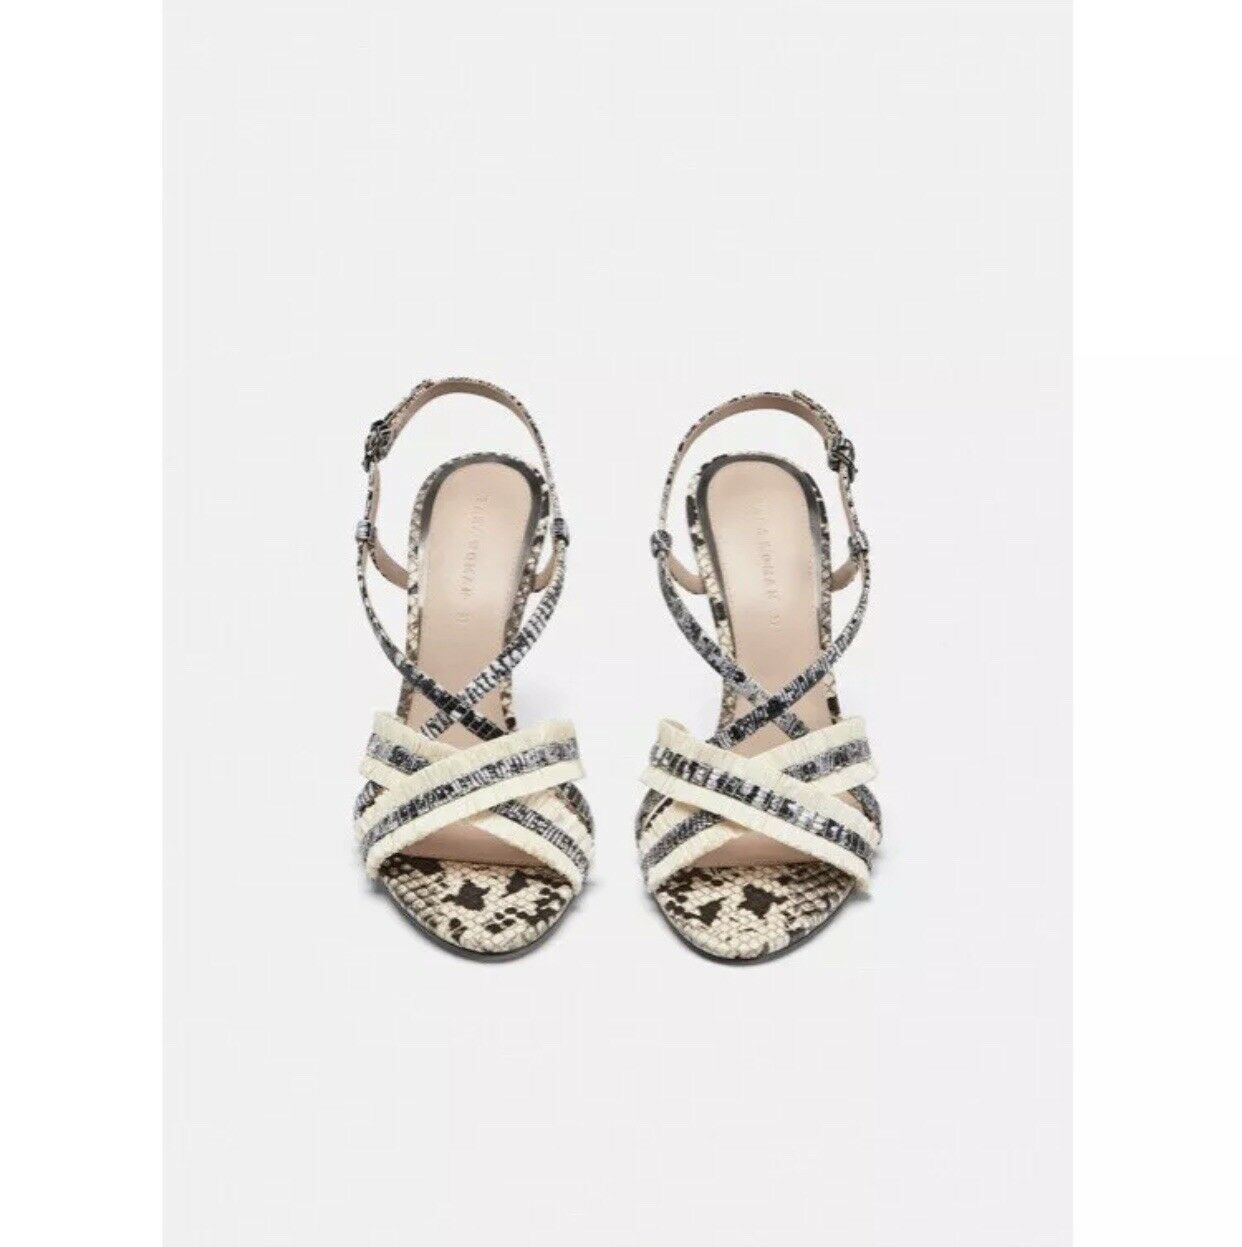 NWT Leopard    Snakeskin Stampa Sandals calibro US 9 REF 1324  301  outlet in vendita